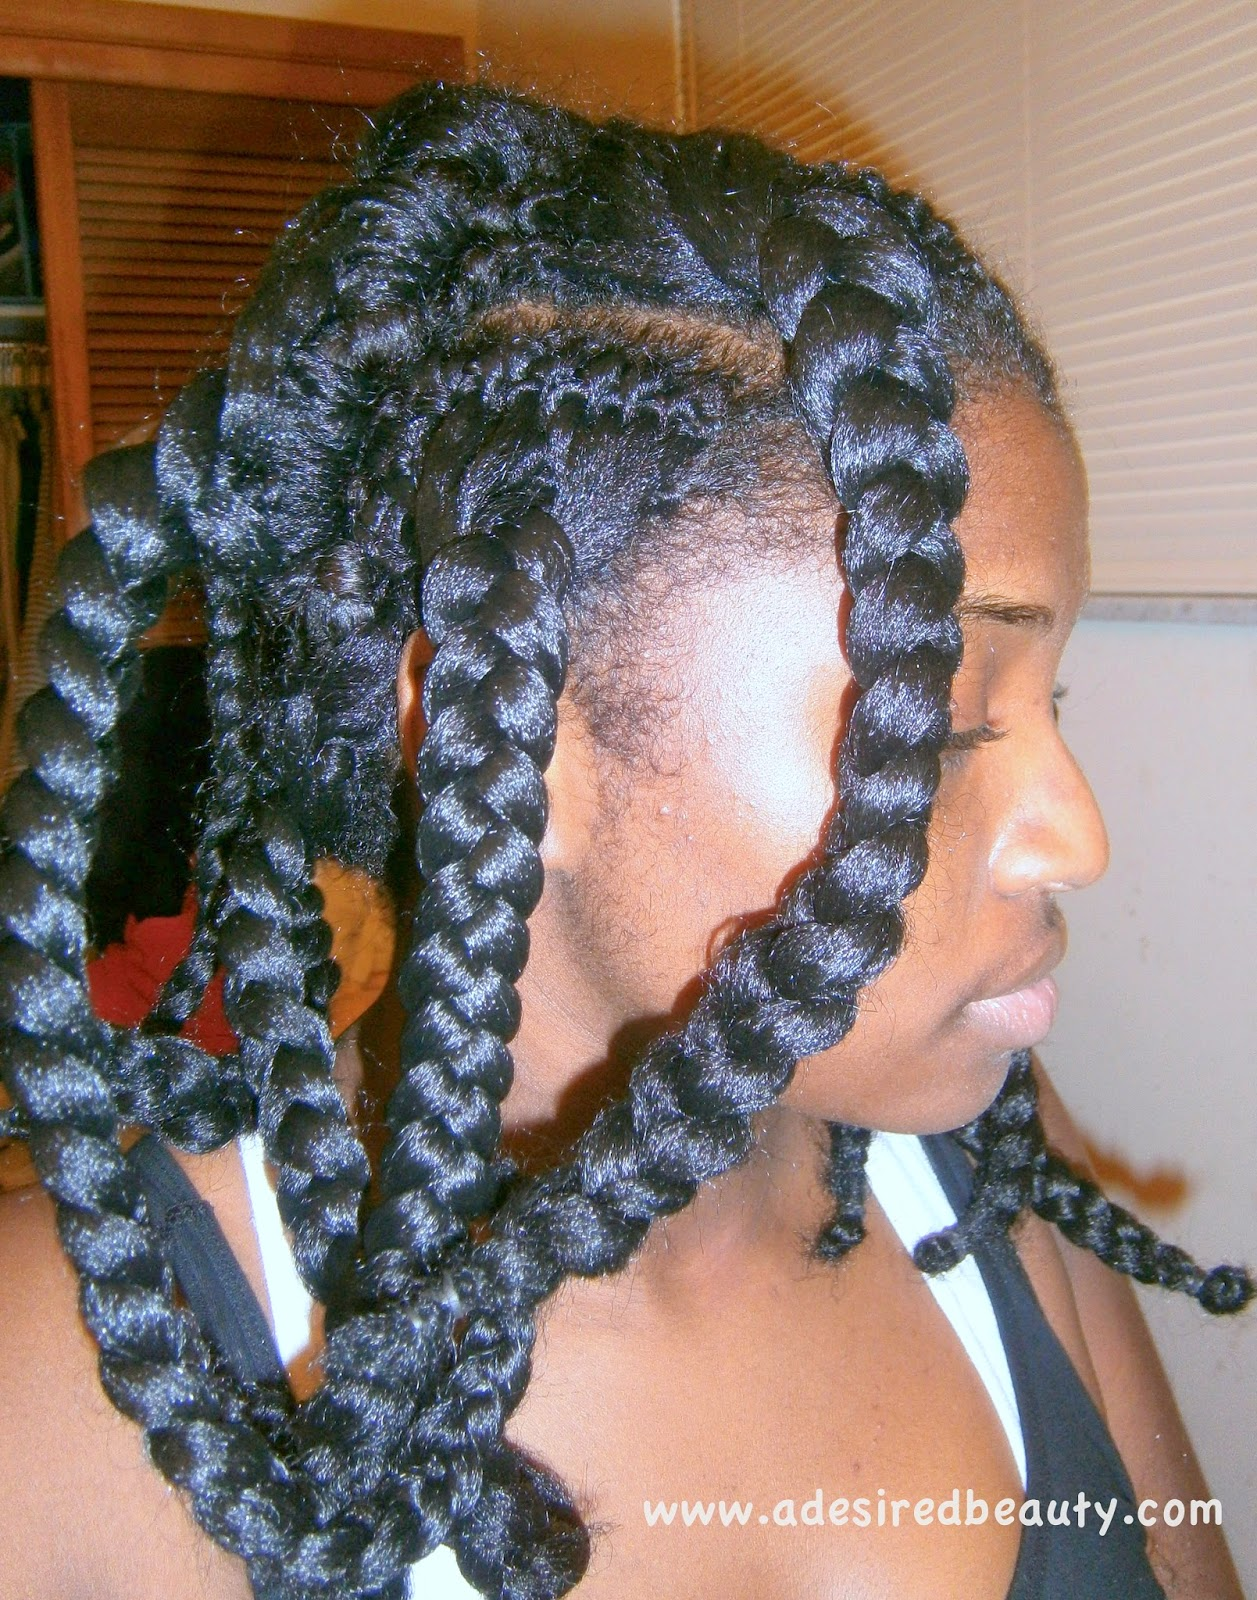 Crochet Hair You Can Wash : How I Wash My Crochet Braids A Desired Beauty